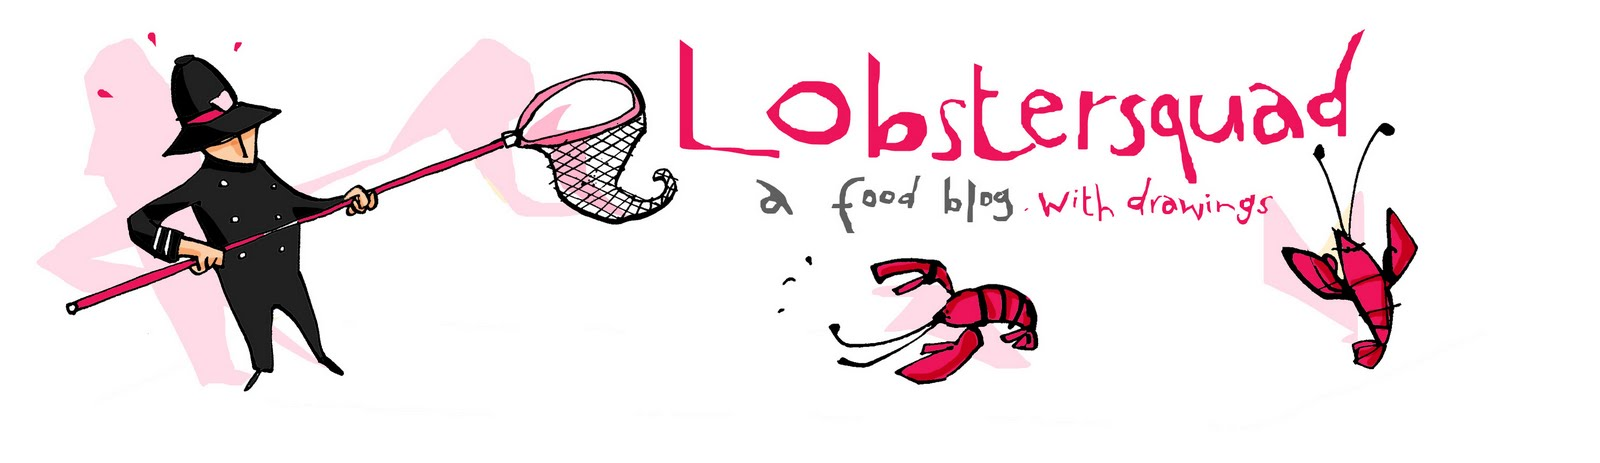 lobstersquad